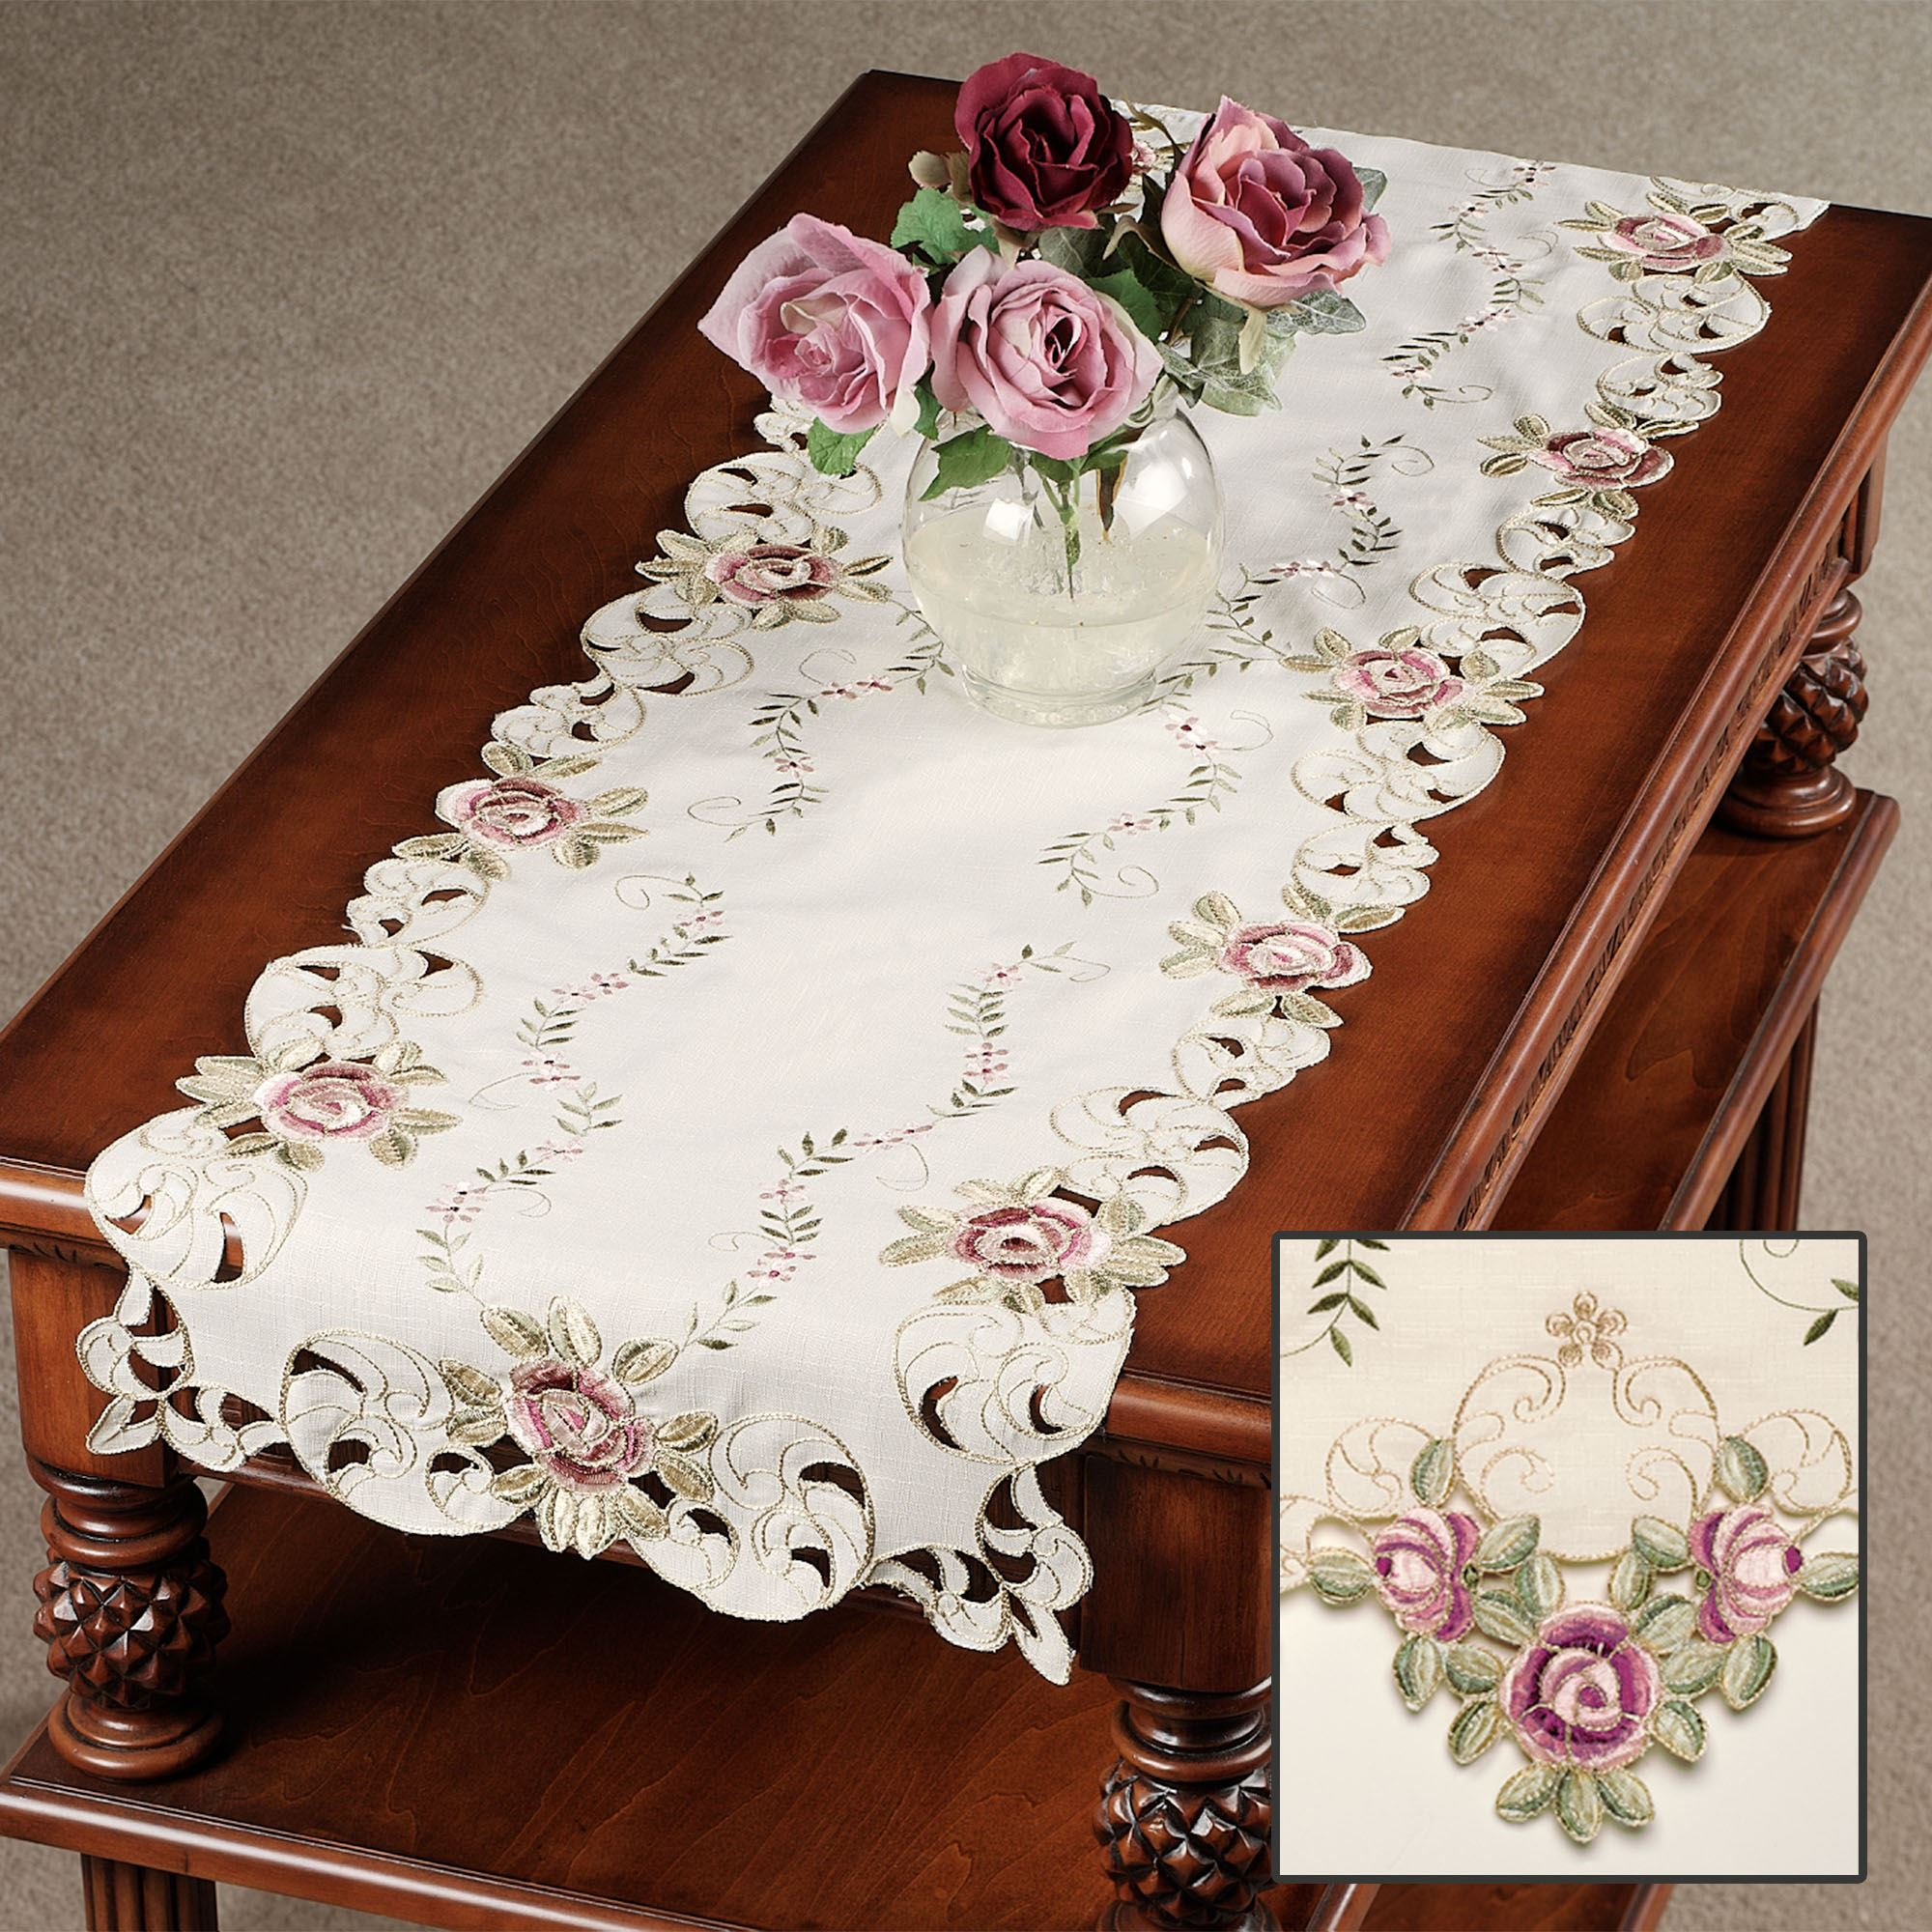 Sideboard Xxl Bella Rose Embroidered Table Runners